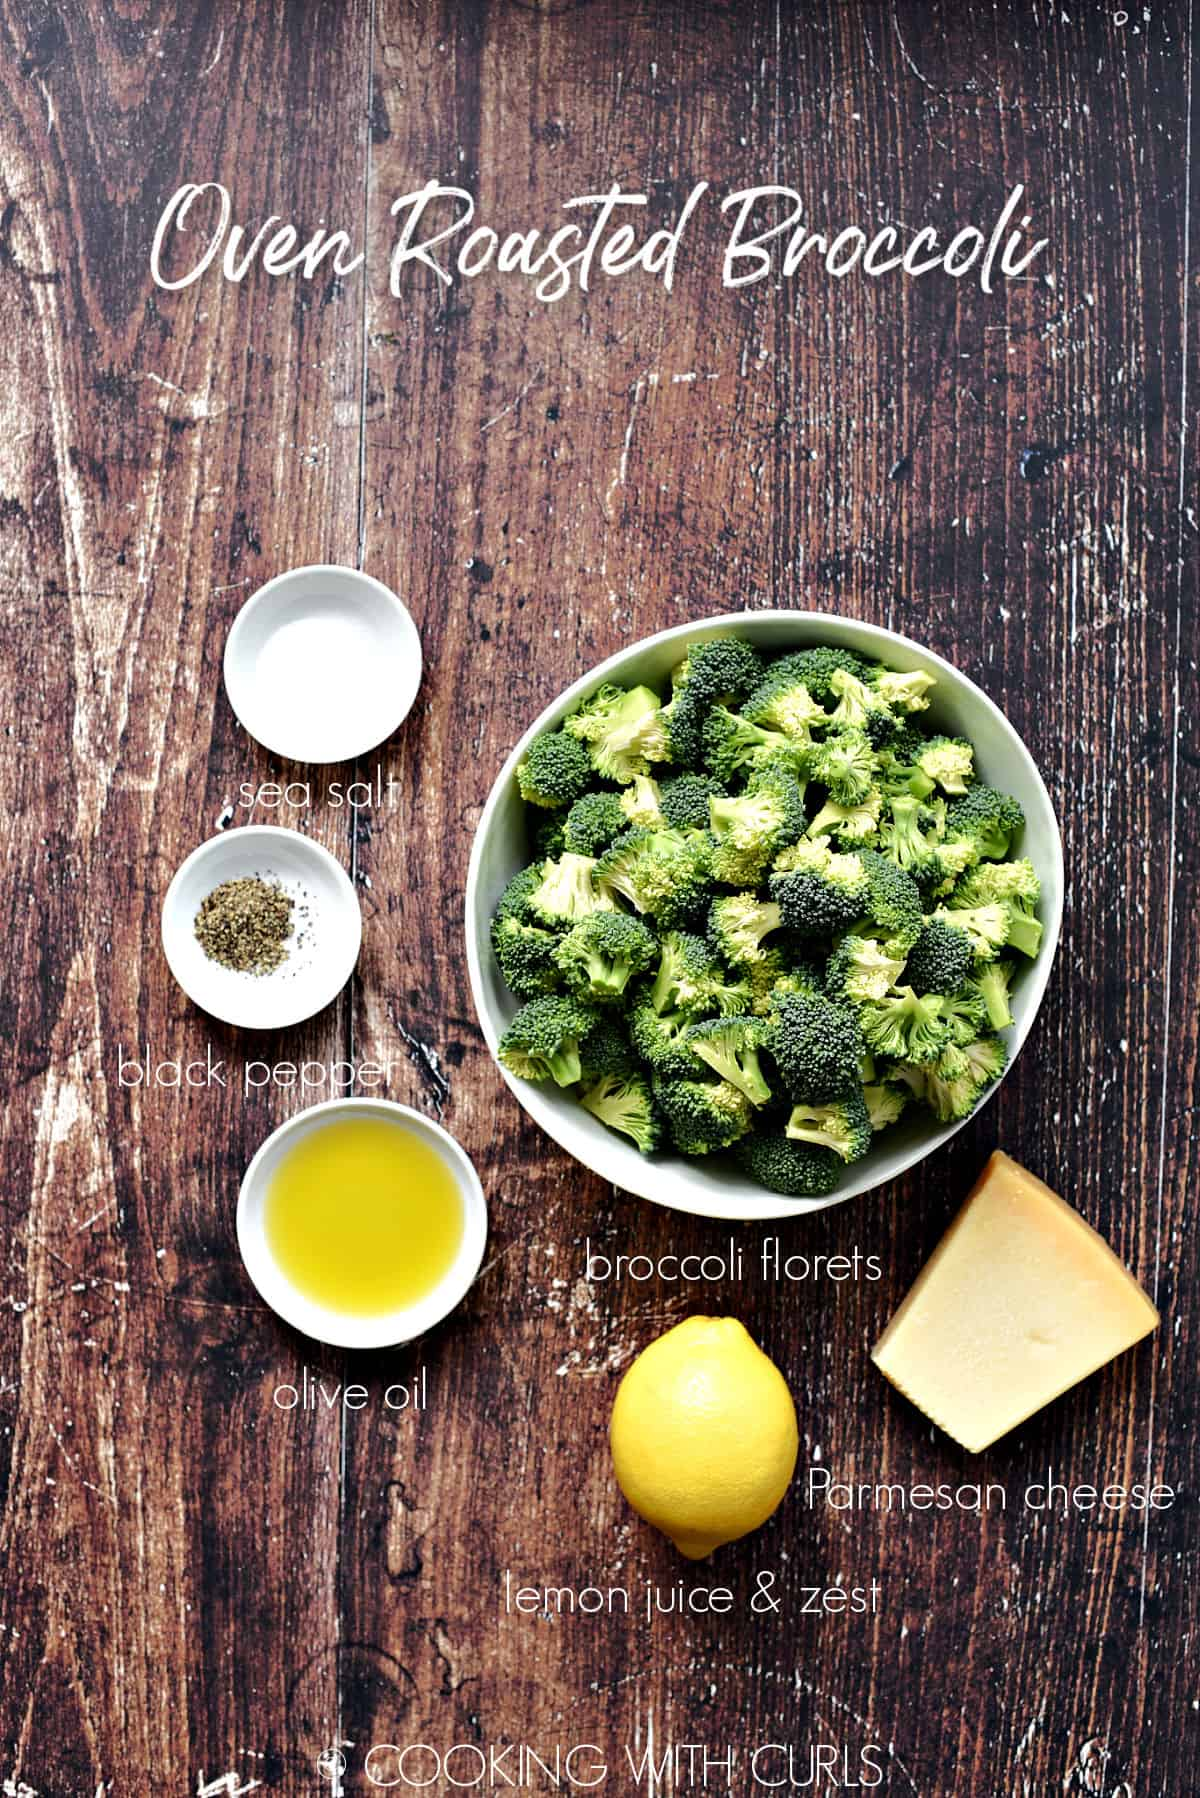 Oven Roasted Broccoli ingredients in white bowls on a wood background.